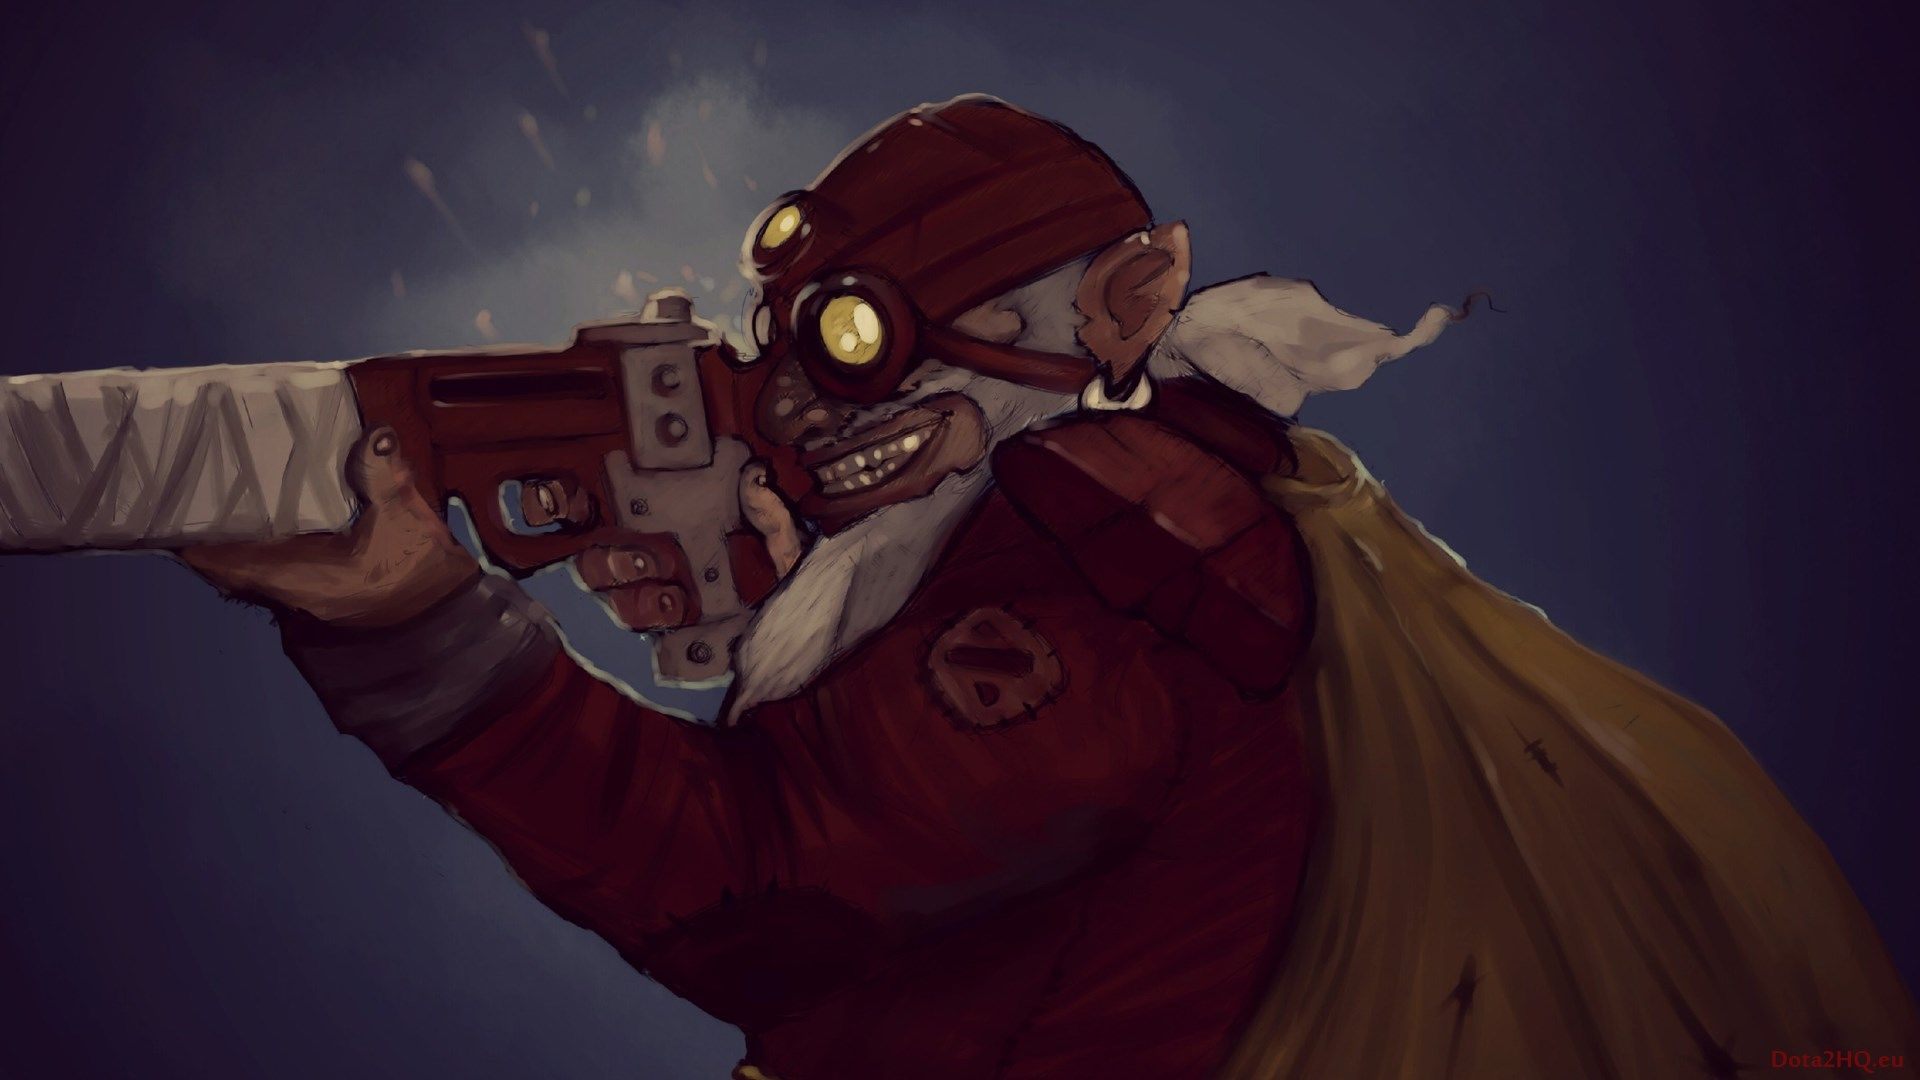 1920x1080 Sniper Dota 2 Wallpaper Hd Wallpapers And Backgronds